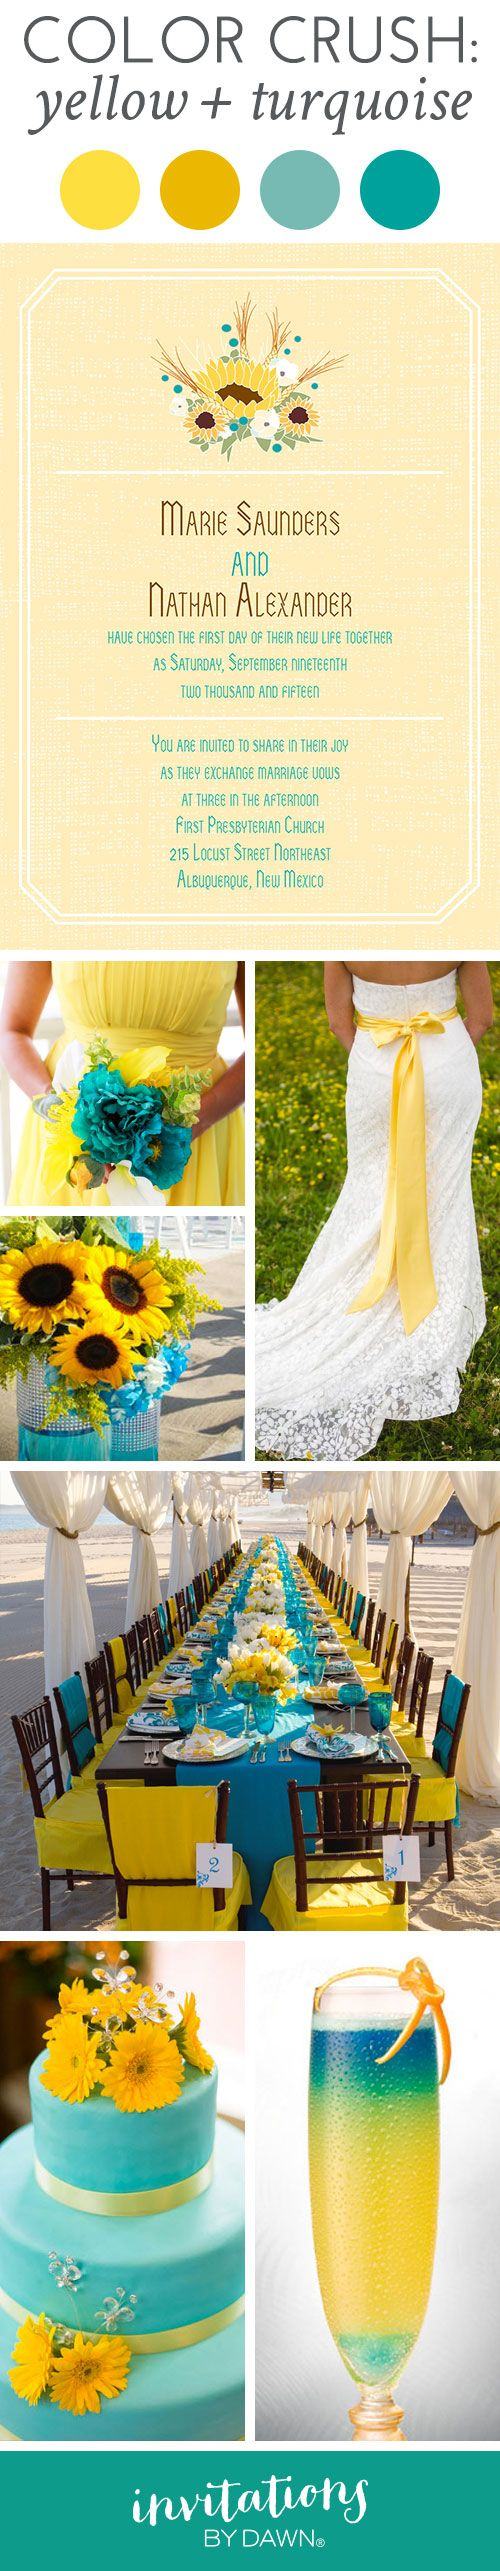 Wedding Color Crush: Yellow and Turquoise